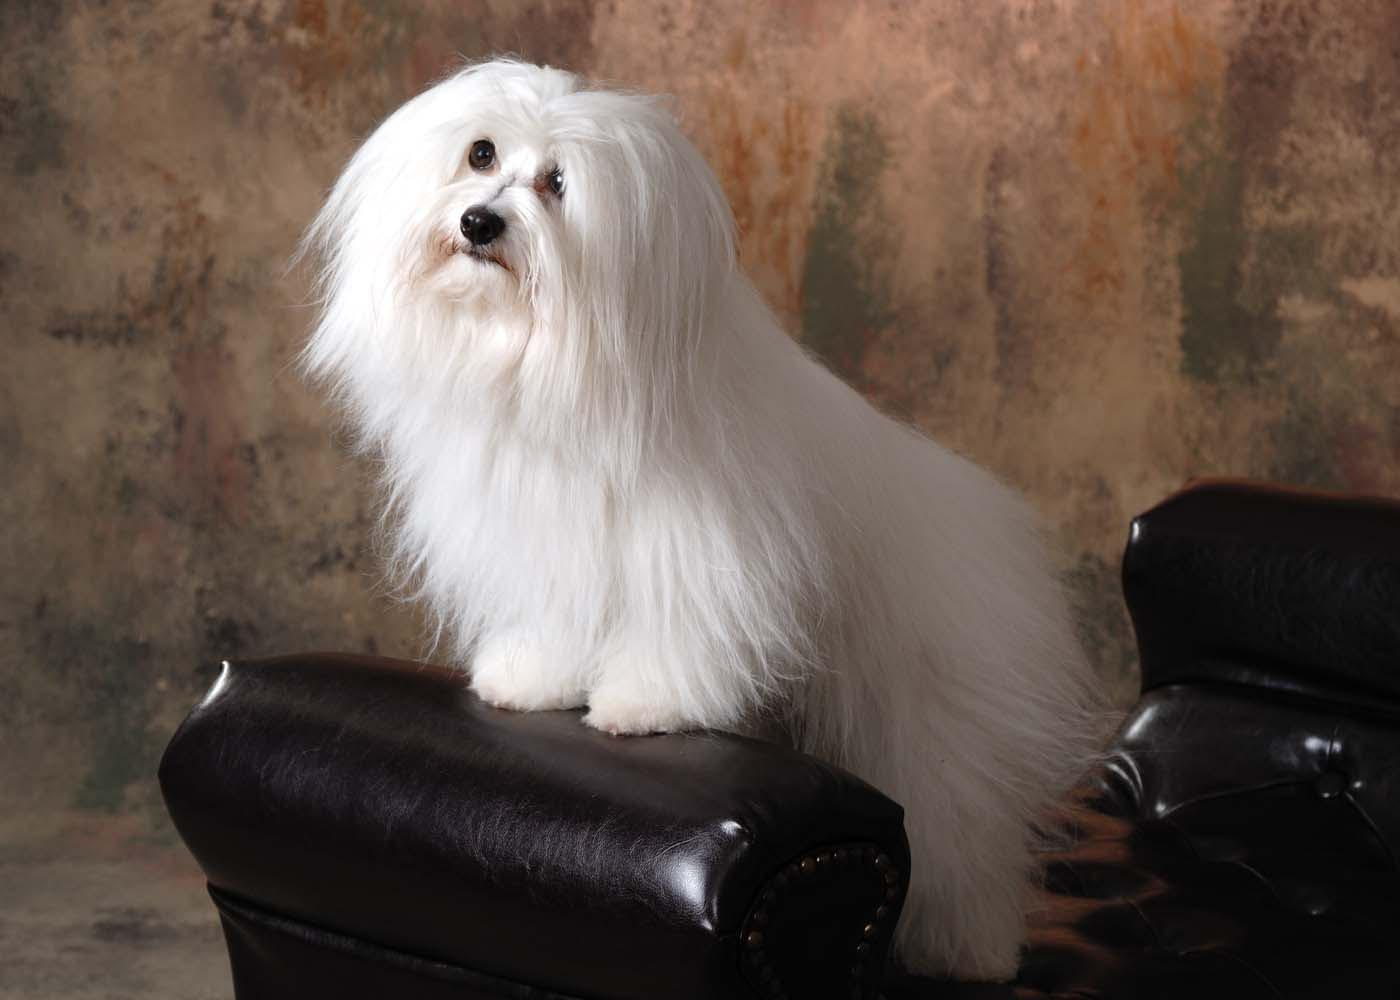 Sitting Coton de Tulear dog  wallpaper